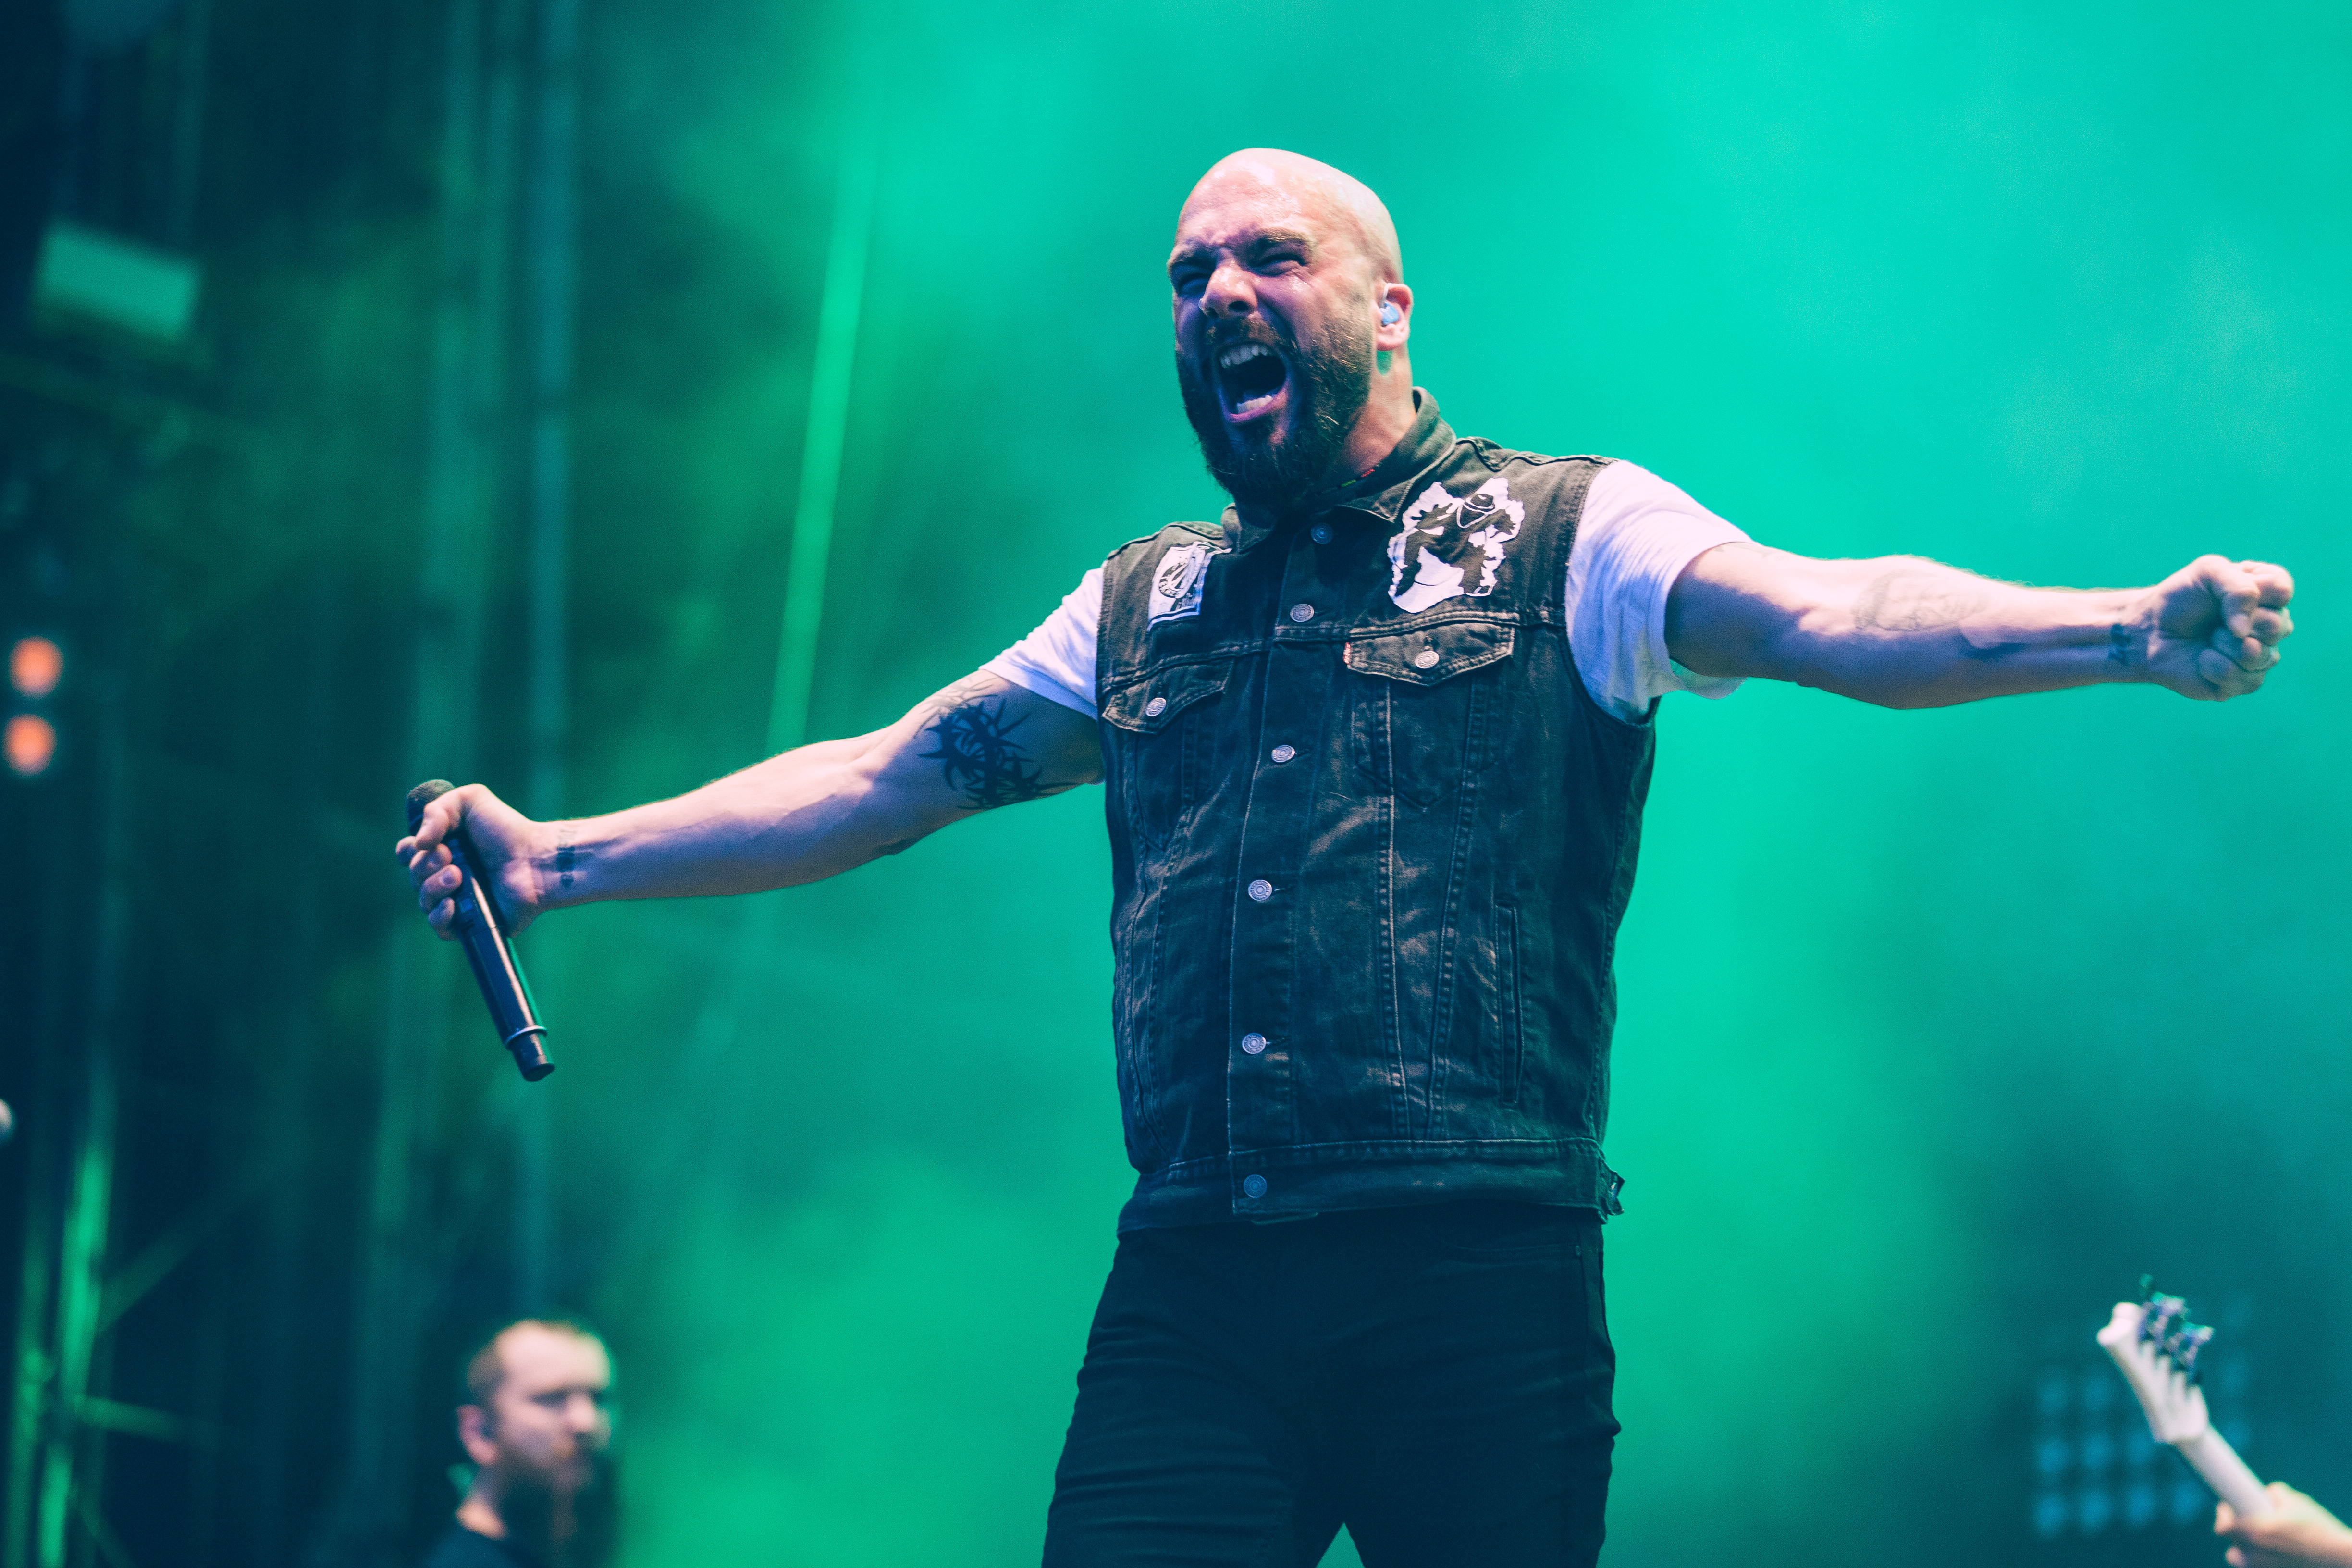 File:Killswitch Engage - Rock am Ring 2016 - Mendig